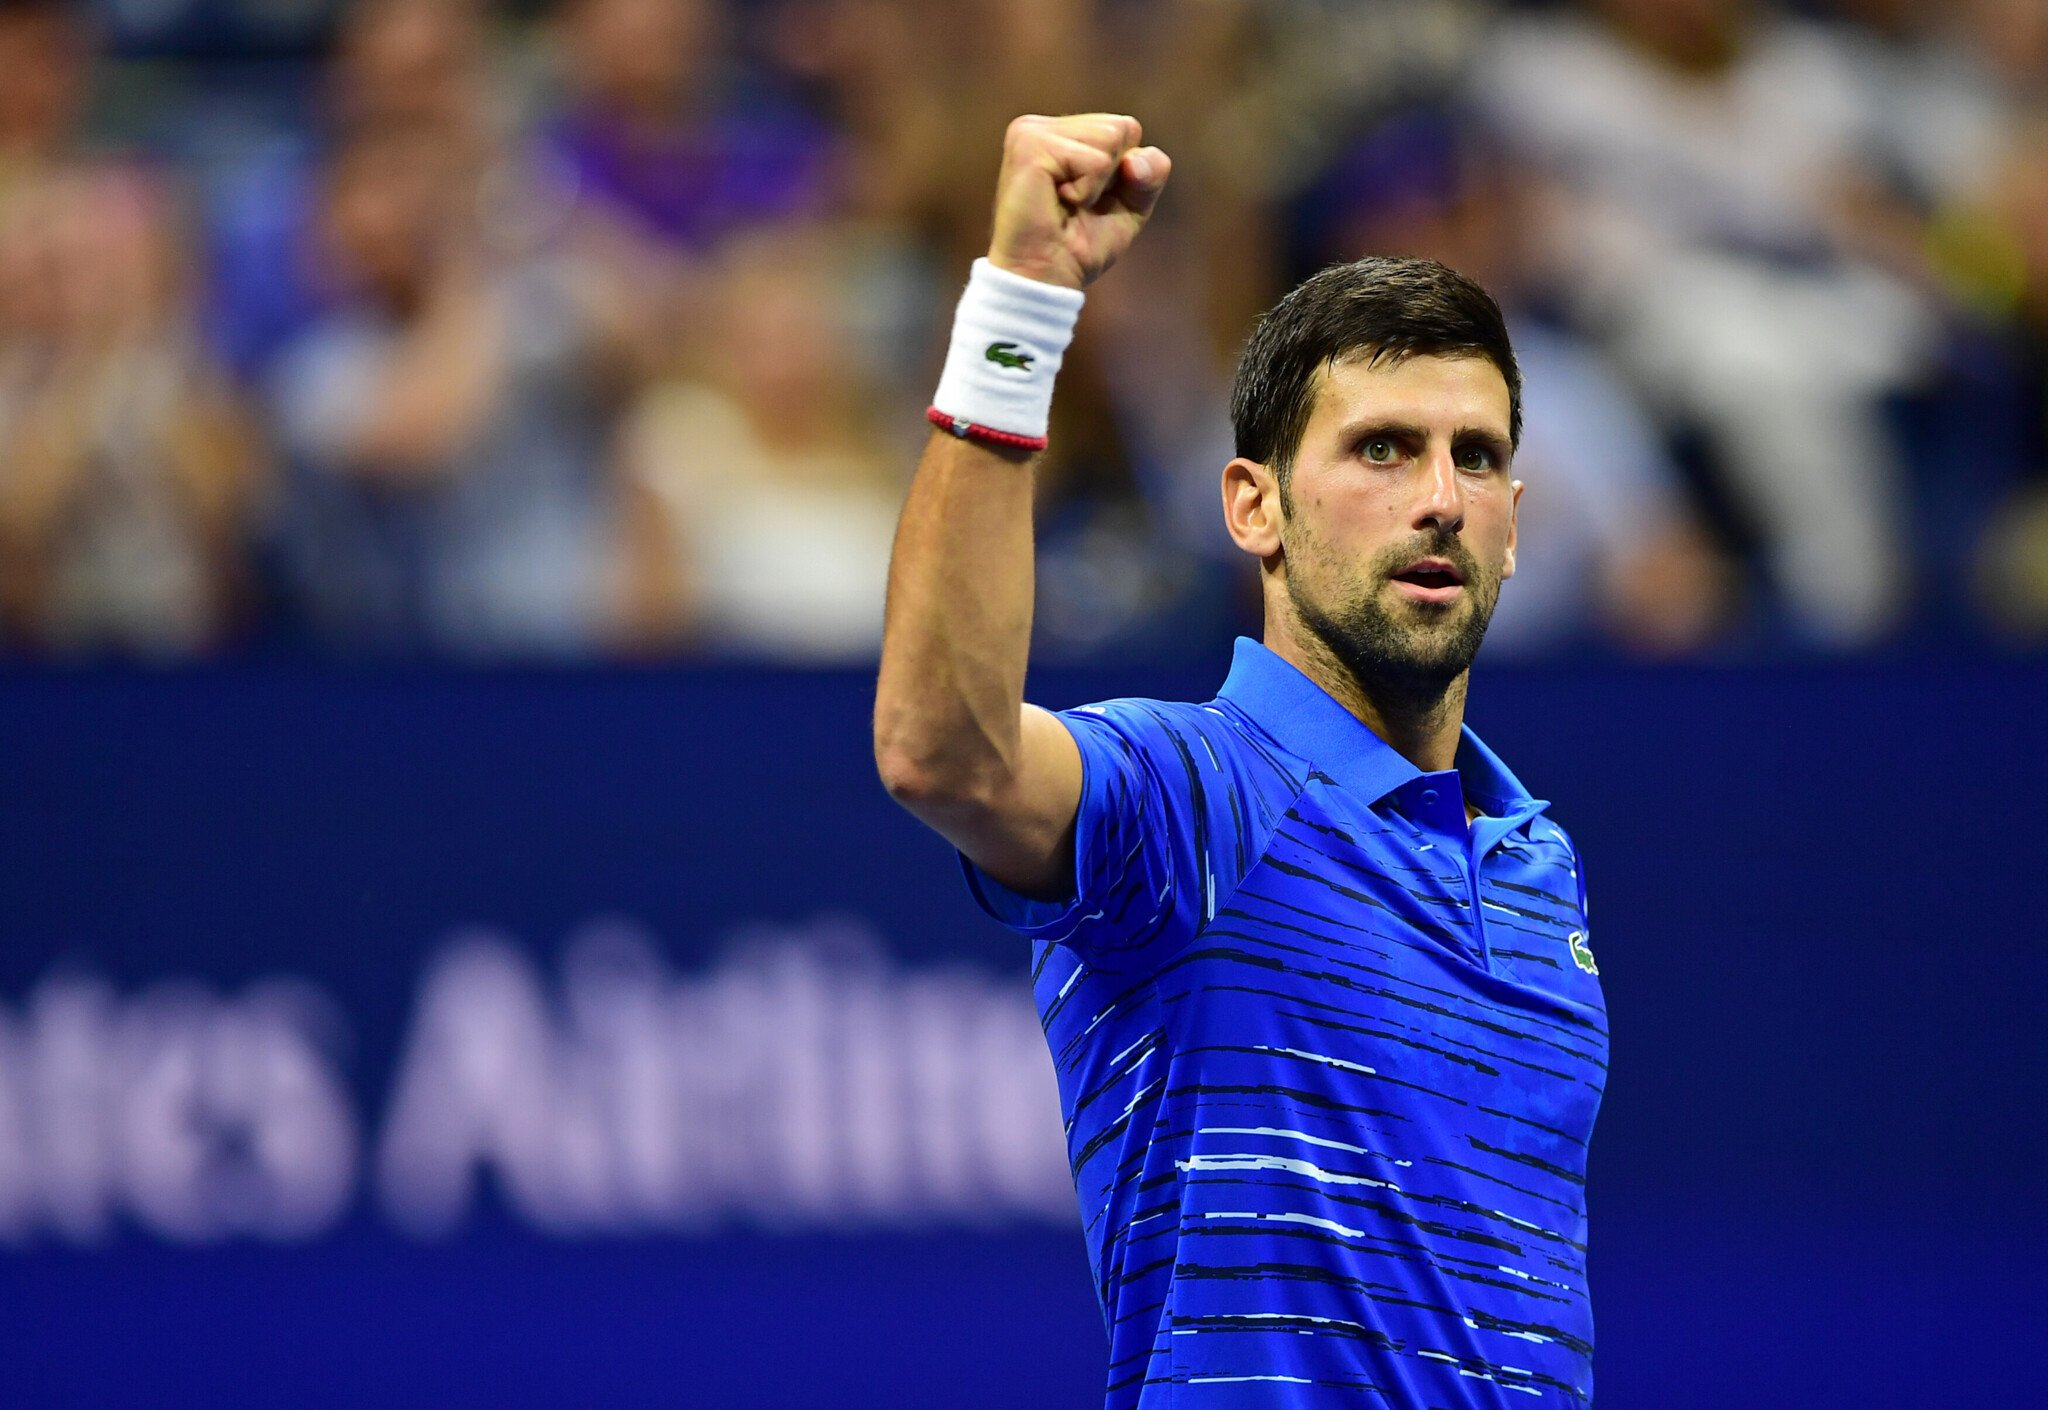 Novak Djokovic, US Open 2019